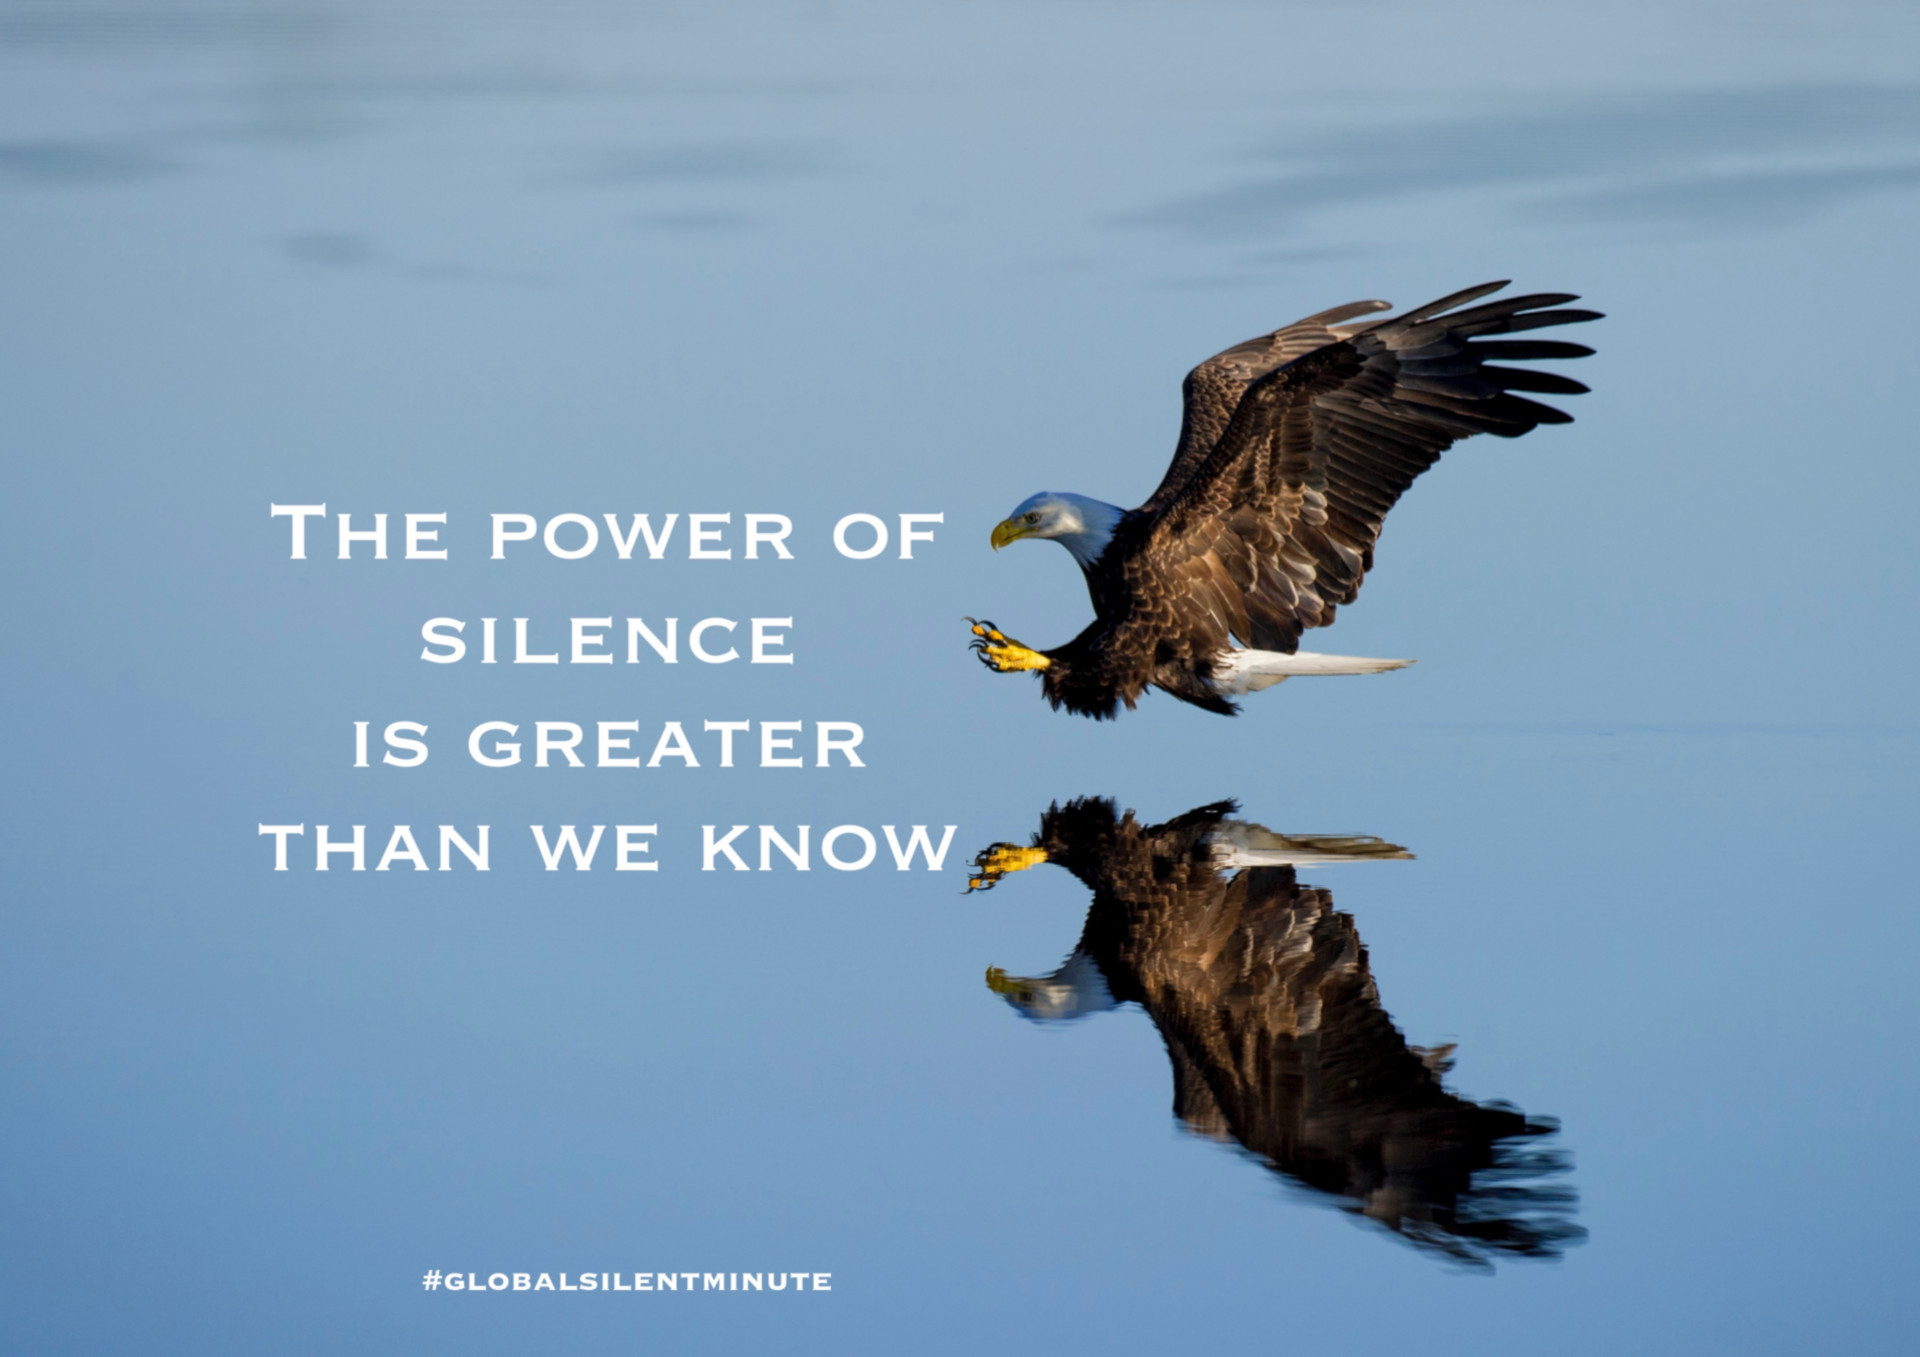 3.The Power of Silence is greater than you know